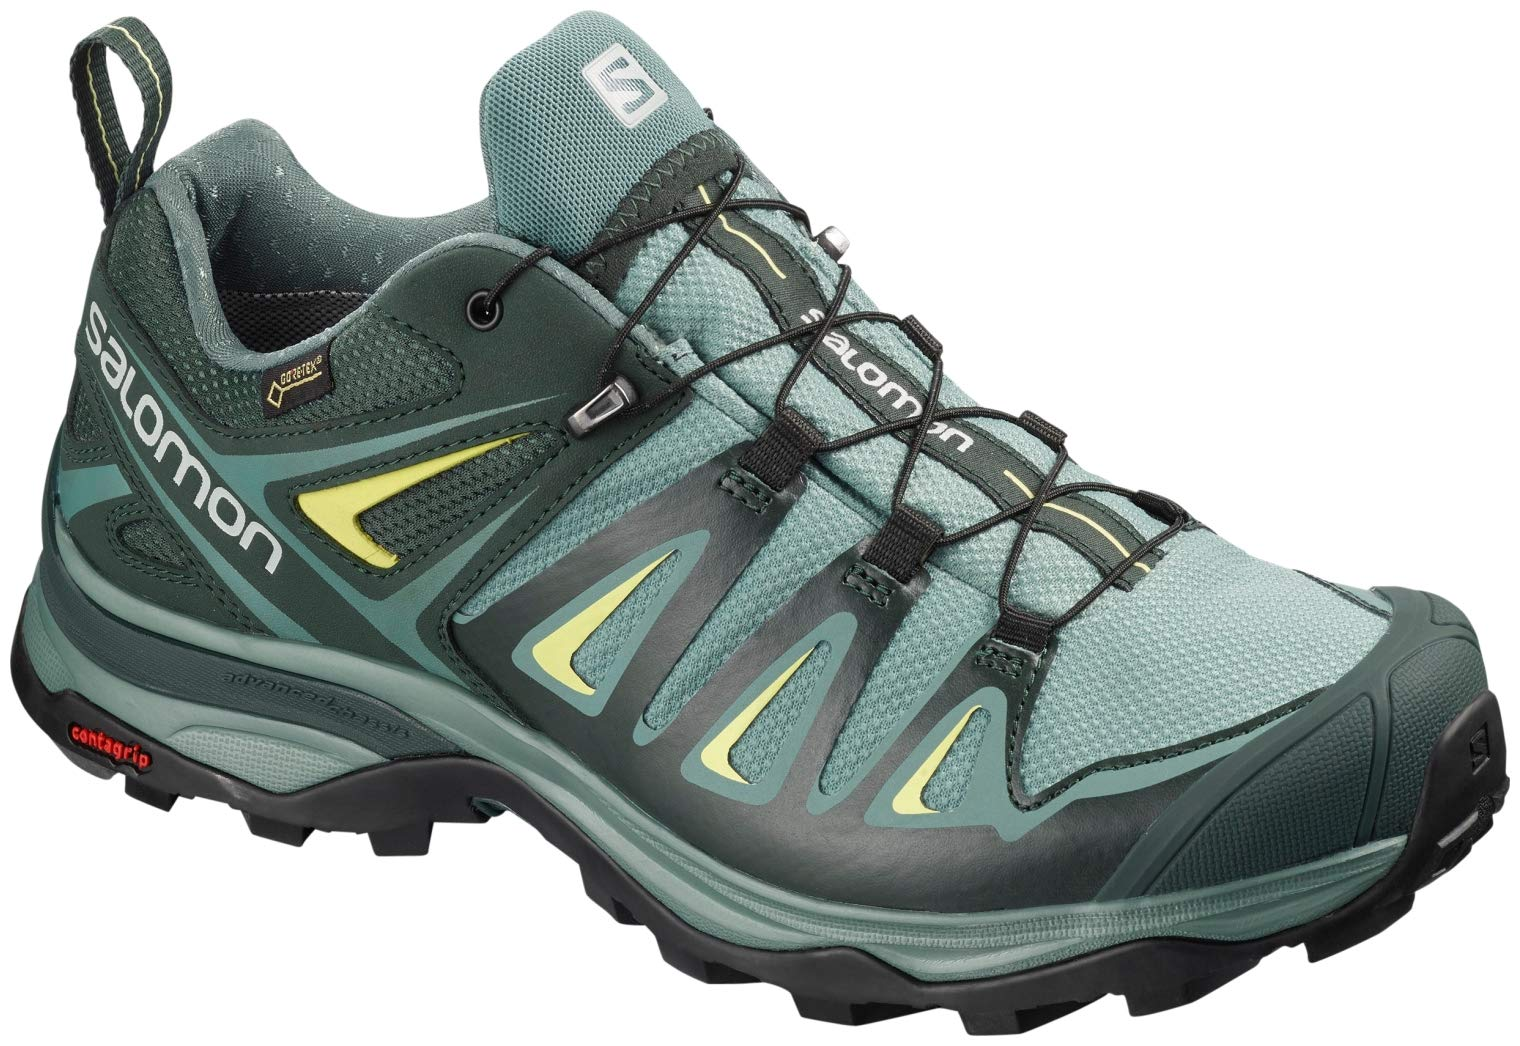 Salomon Women's X Ultra 3 Wide GTX Hiking Shoes, Artic/Darkest Spruce/Sunny Lime, 5.5 D(M) US by Salomon (Image #1)